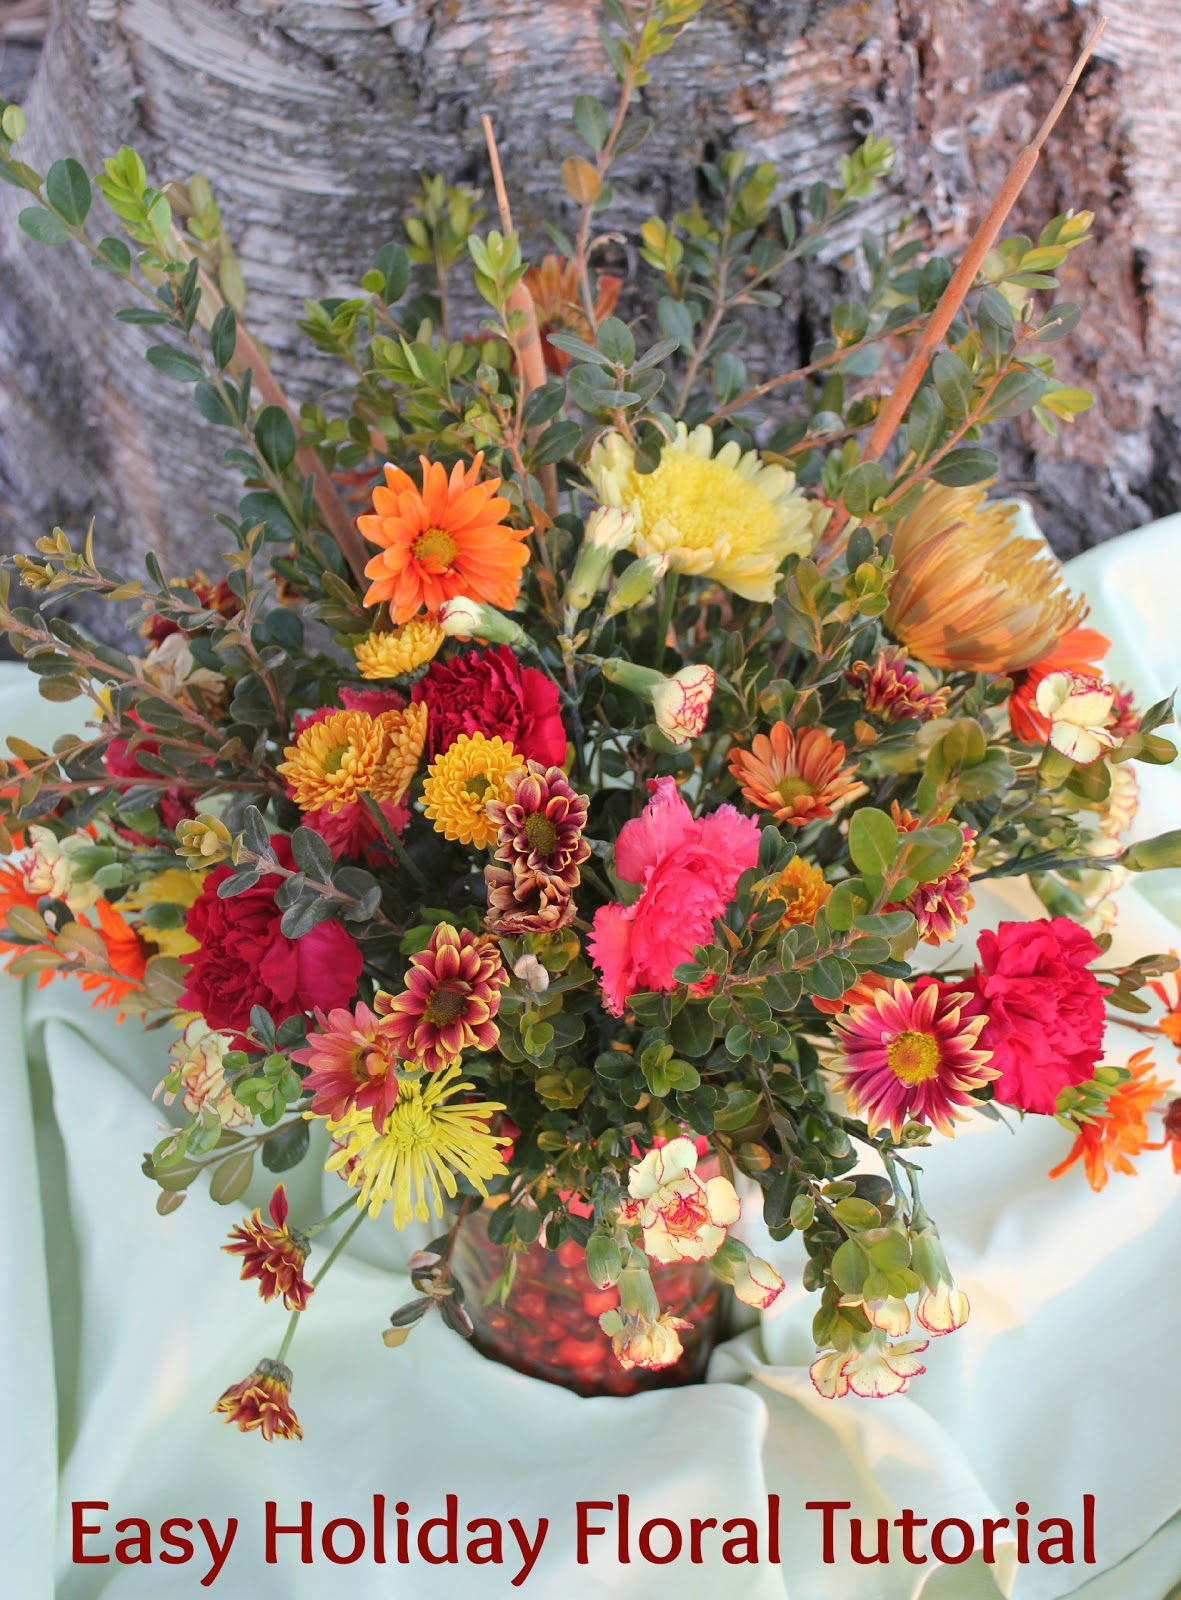 Instructions for a Beautiful Floral Centerpiece for the Holidays ...